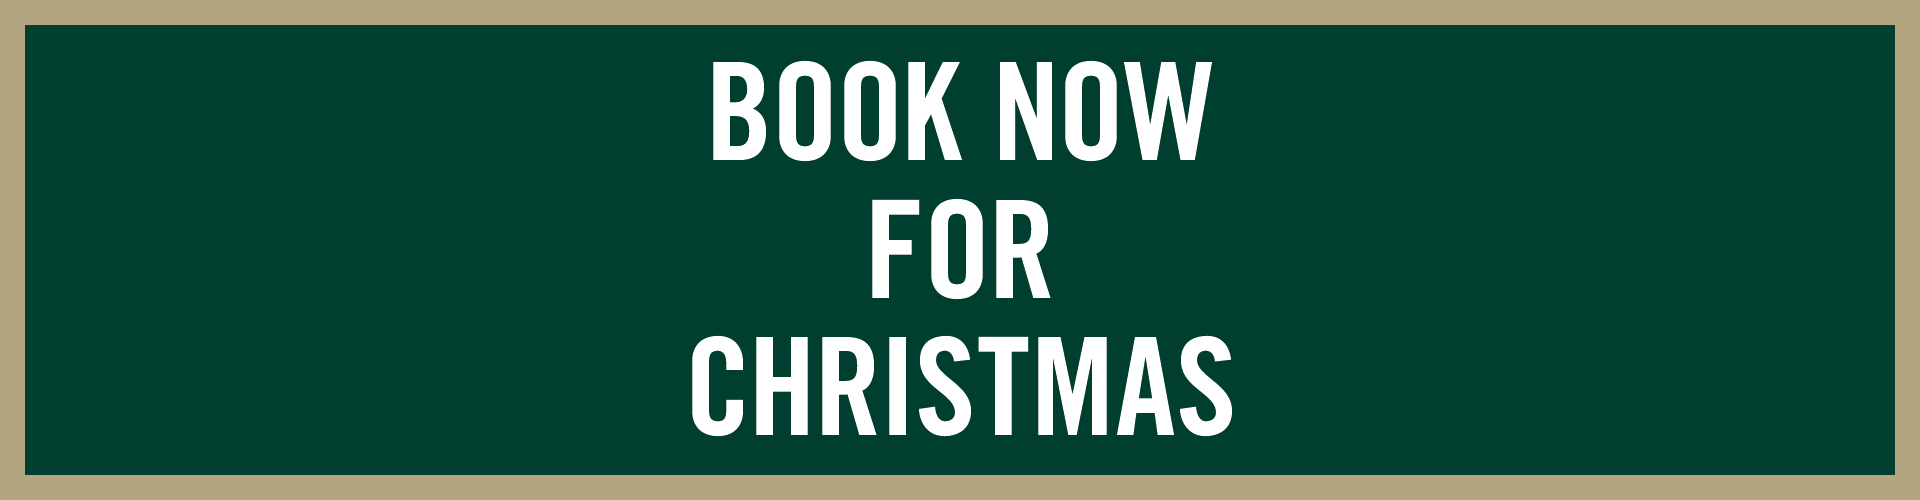 Book Now for Christmas